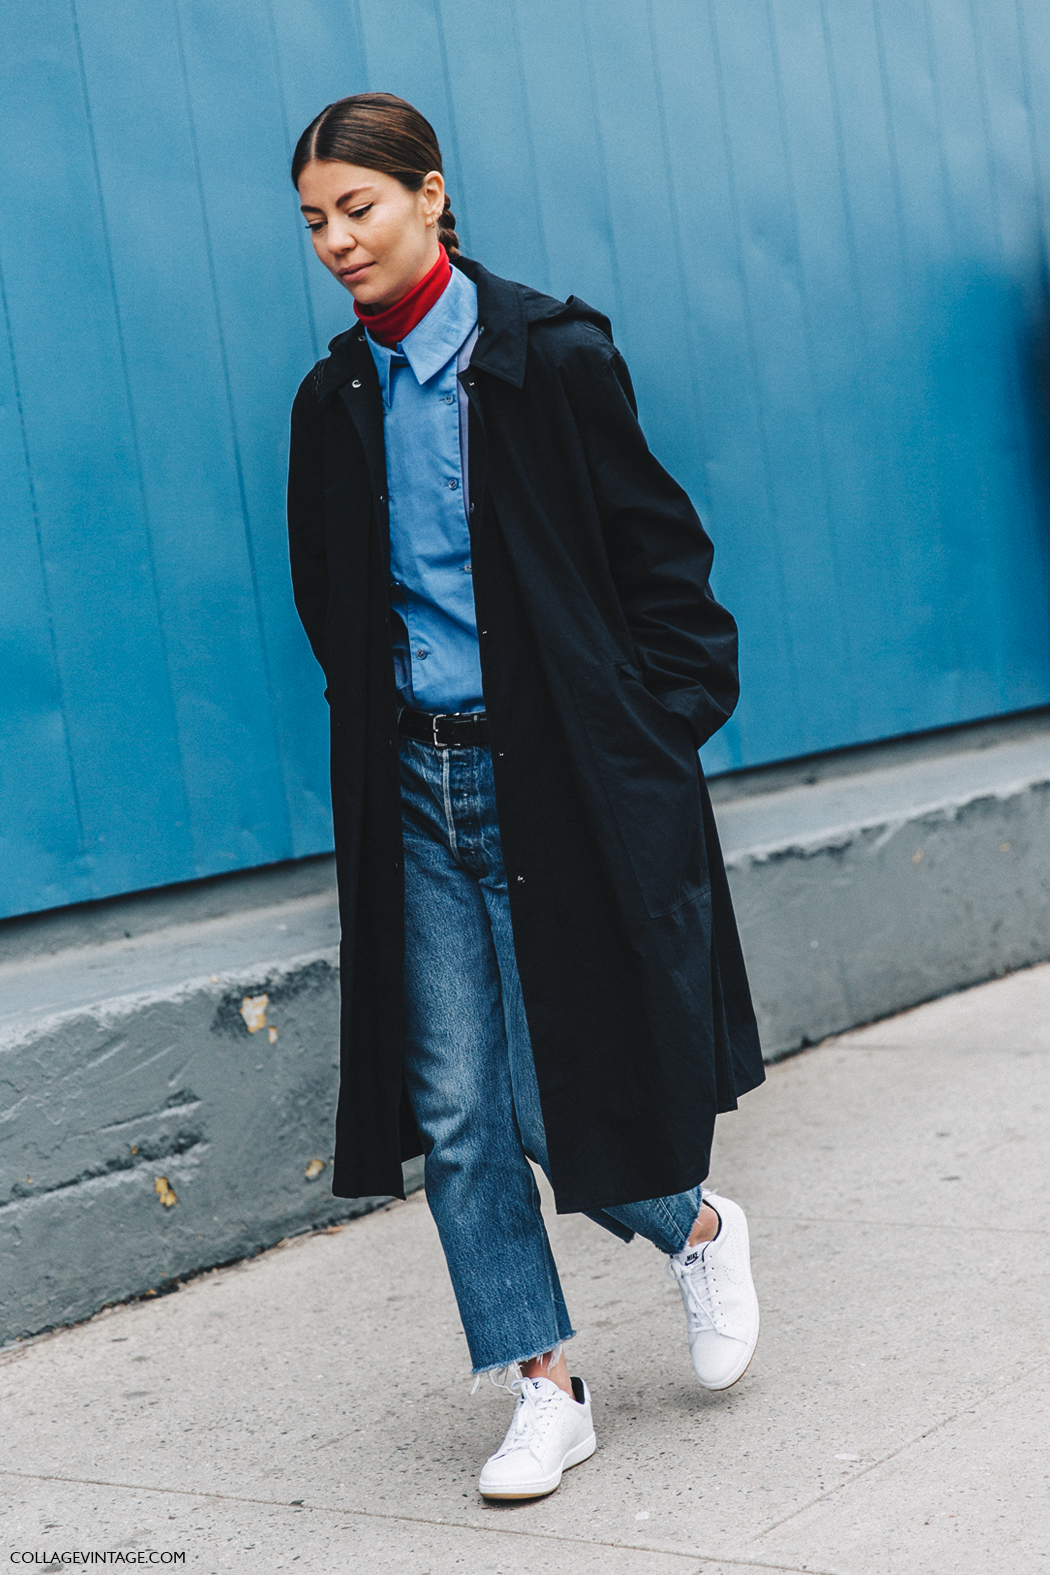 NYFW-New_York_Fashion_Week-Fall_Winter-16-Street_Style-Jeans-Blue_Coat-Sneakers-Turtle_Neck-Light_Pink_Blouse-Annina-Mislin-